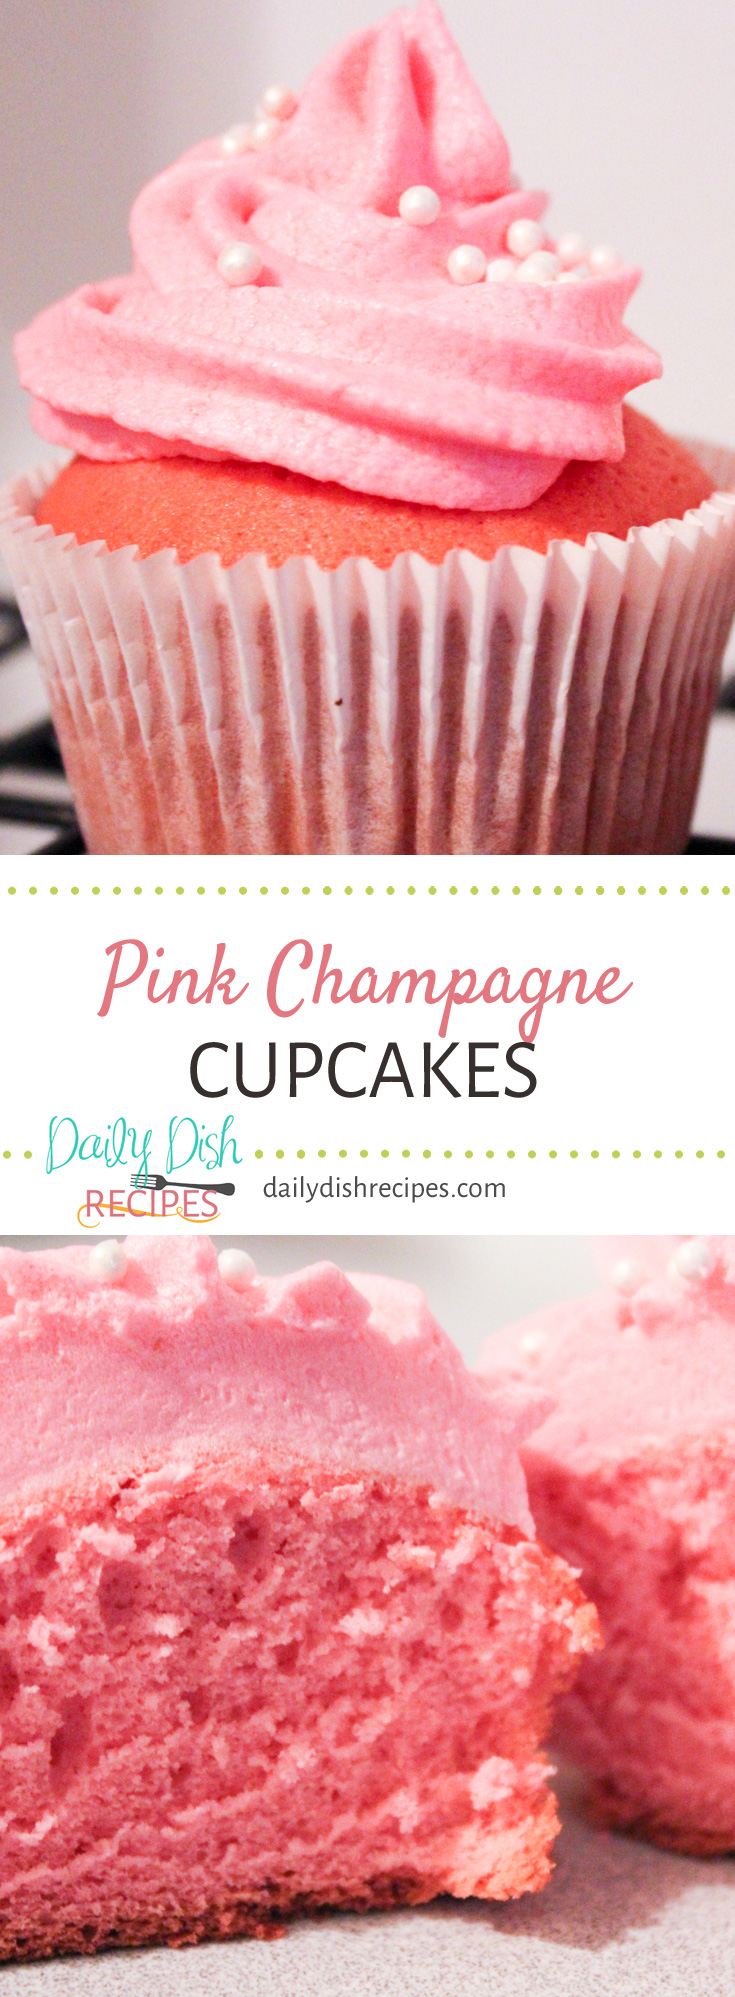 Pink Champagne Cupcakes with Strawberry Champagne Frosting are a fun and festive way to celebrate Valentine's Day or any special holiday with a love one. (they are also pretty fun for New Year's too!)